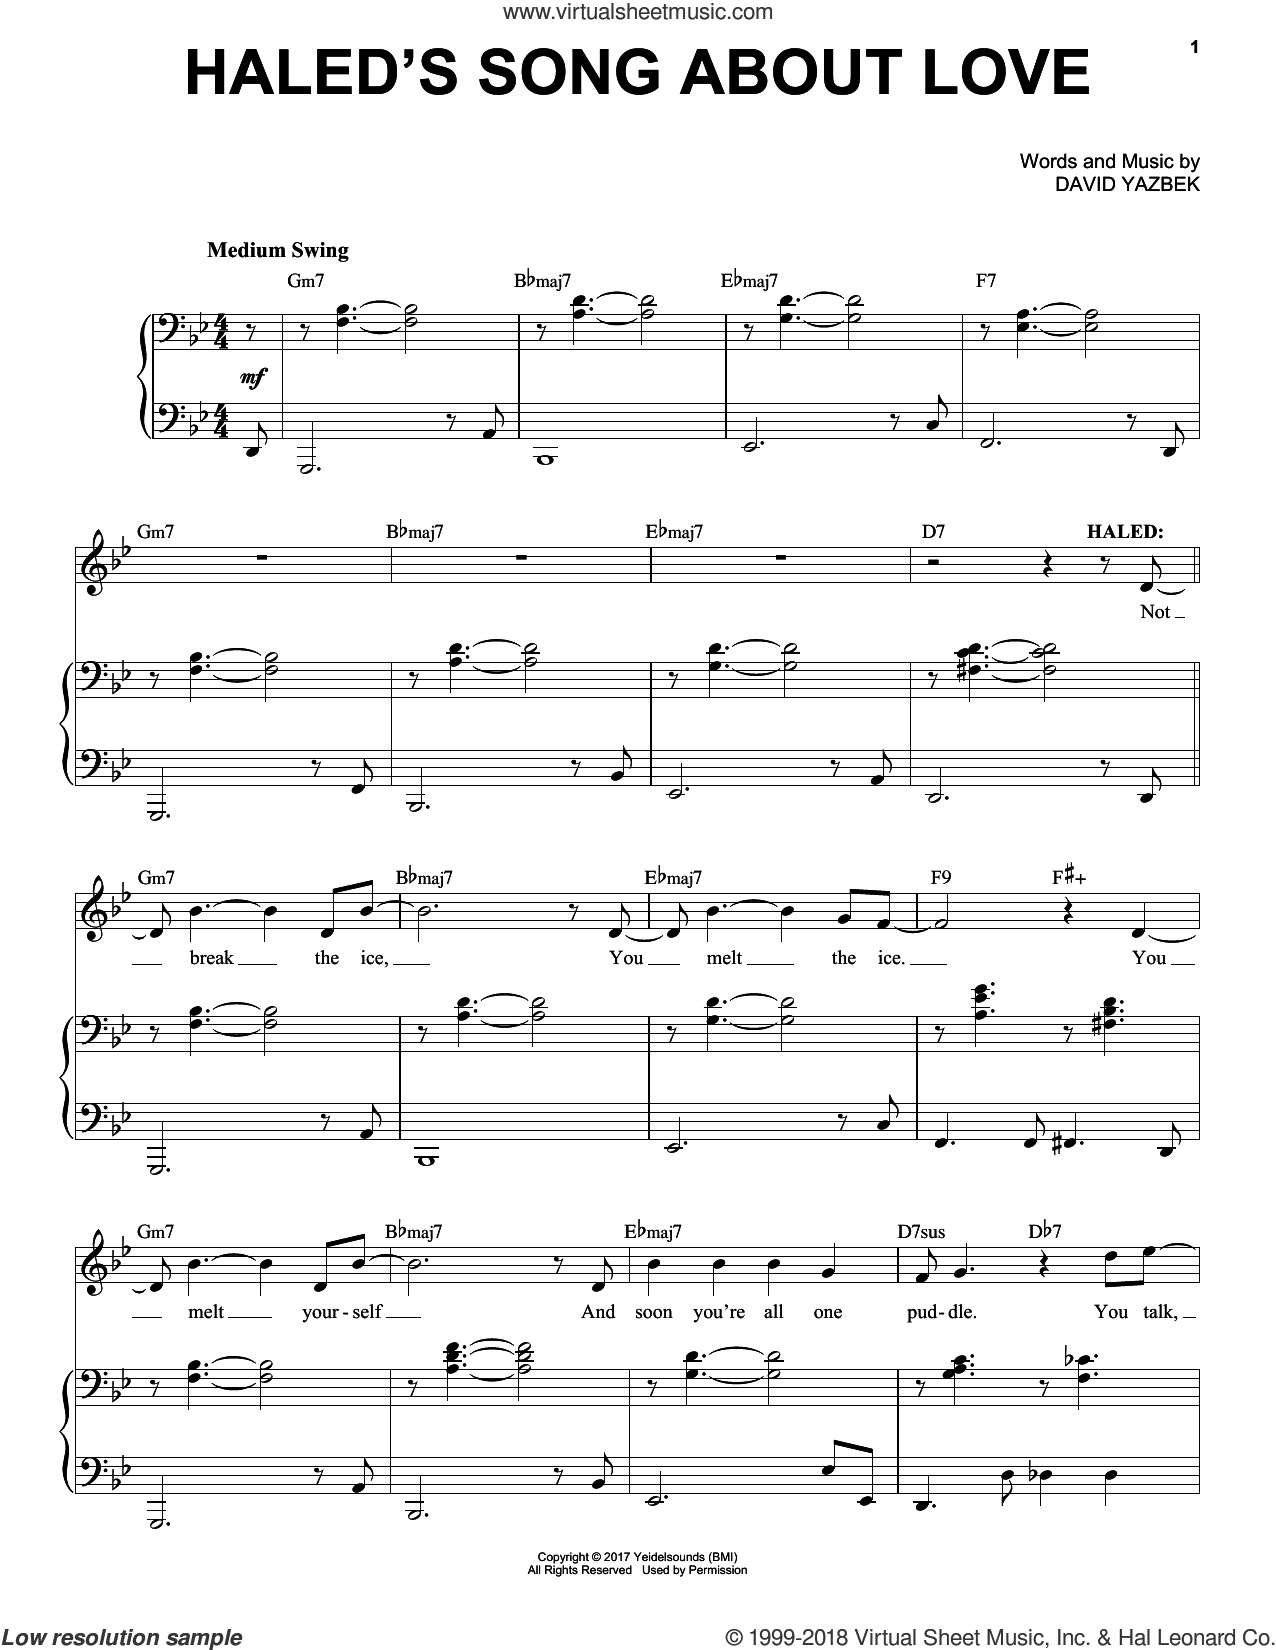 Haled's Song About Love sheet music for voice and piano by David Yazbek, intermediate skill level